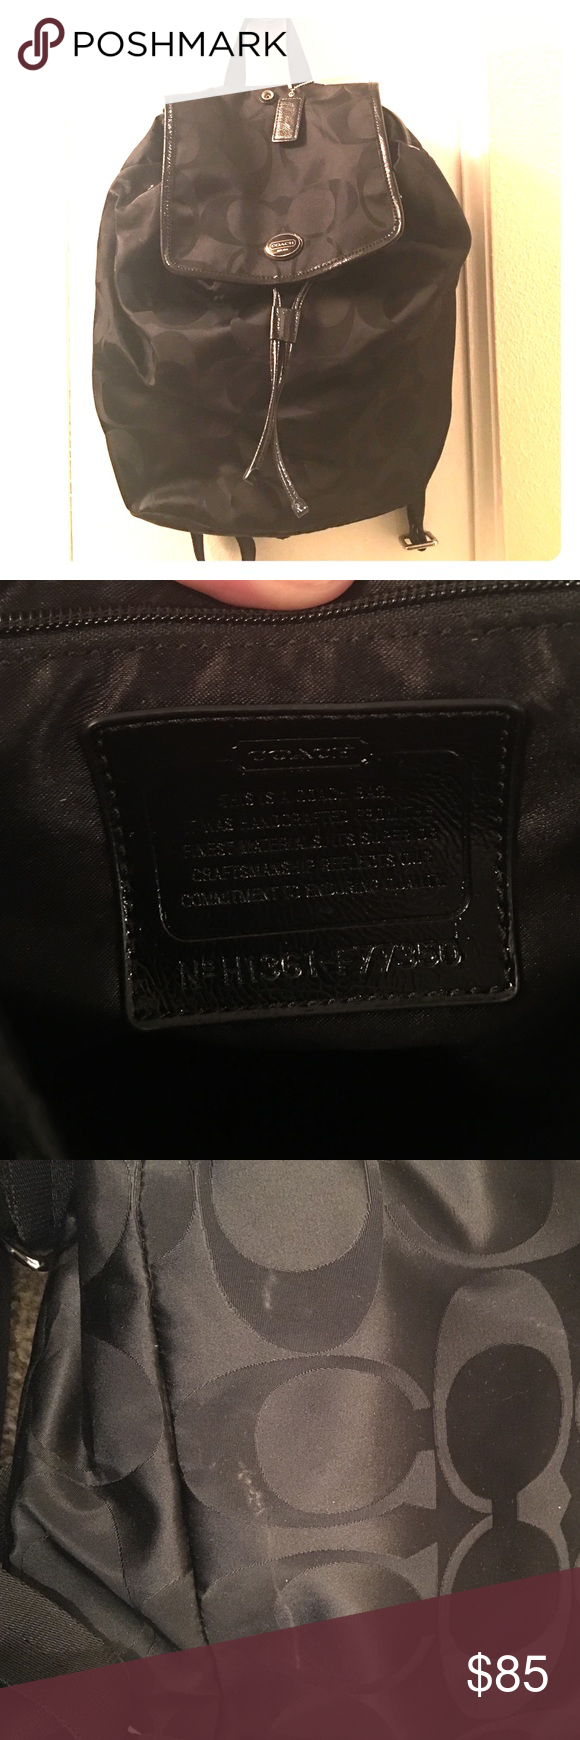 Coach backpack Coach backpack used a few times with a small blemish on the back. Great quality, super cute, black on black. Coach Bags Backpacks